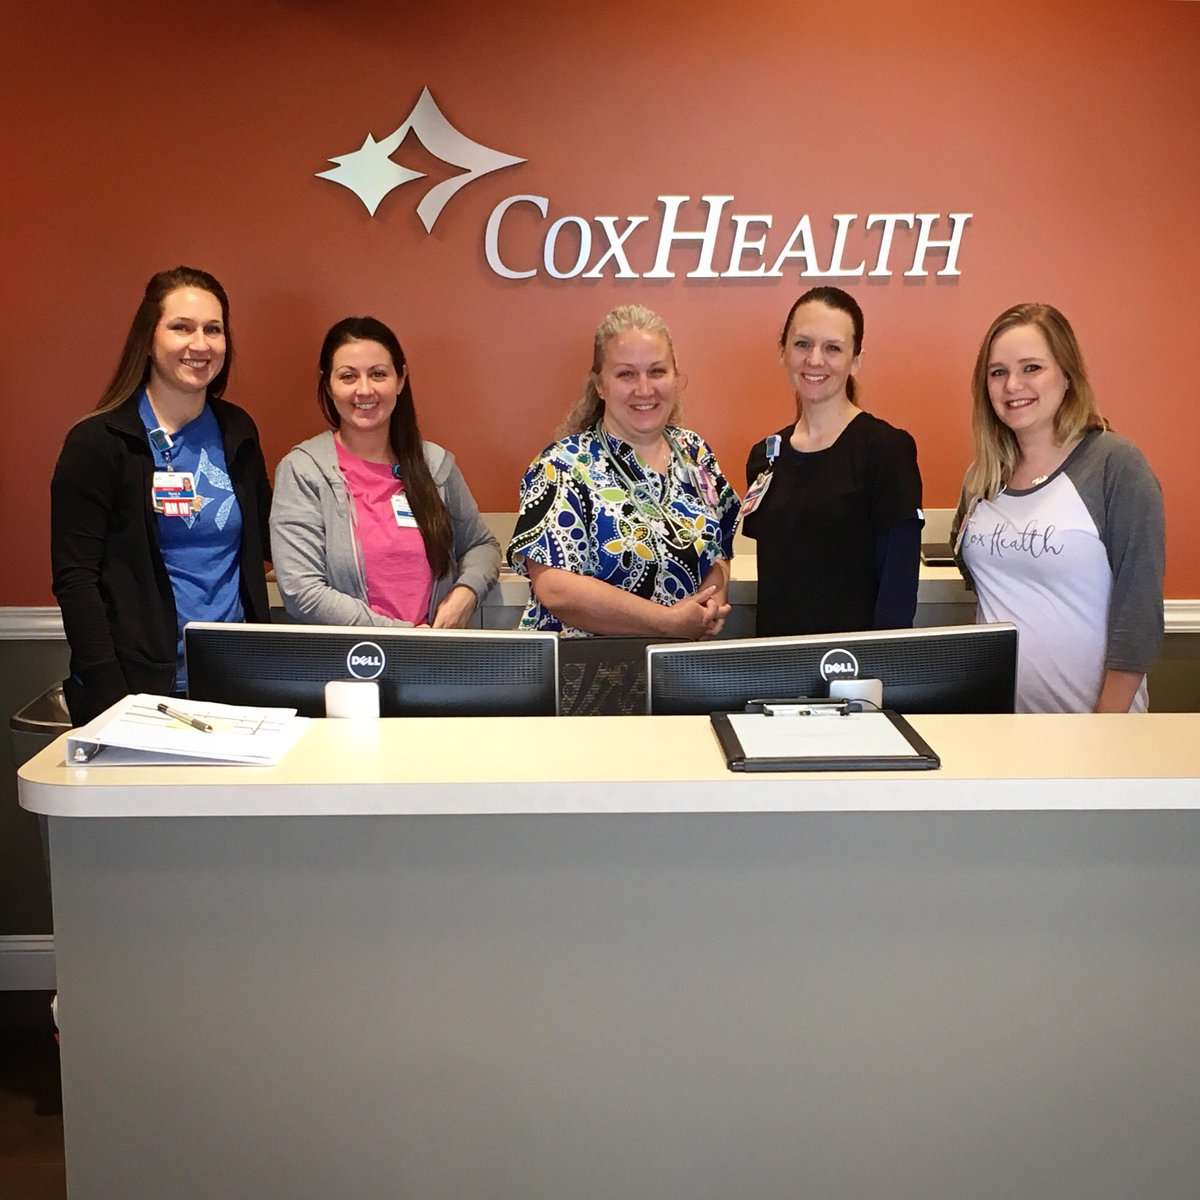 Coxhealth On Twitter As Of This Morning We Re Now Seeing Patients